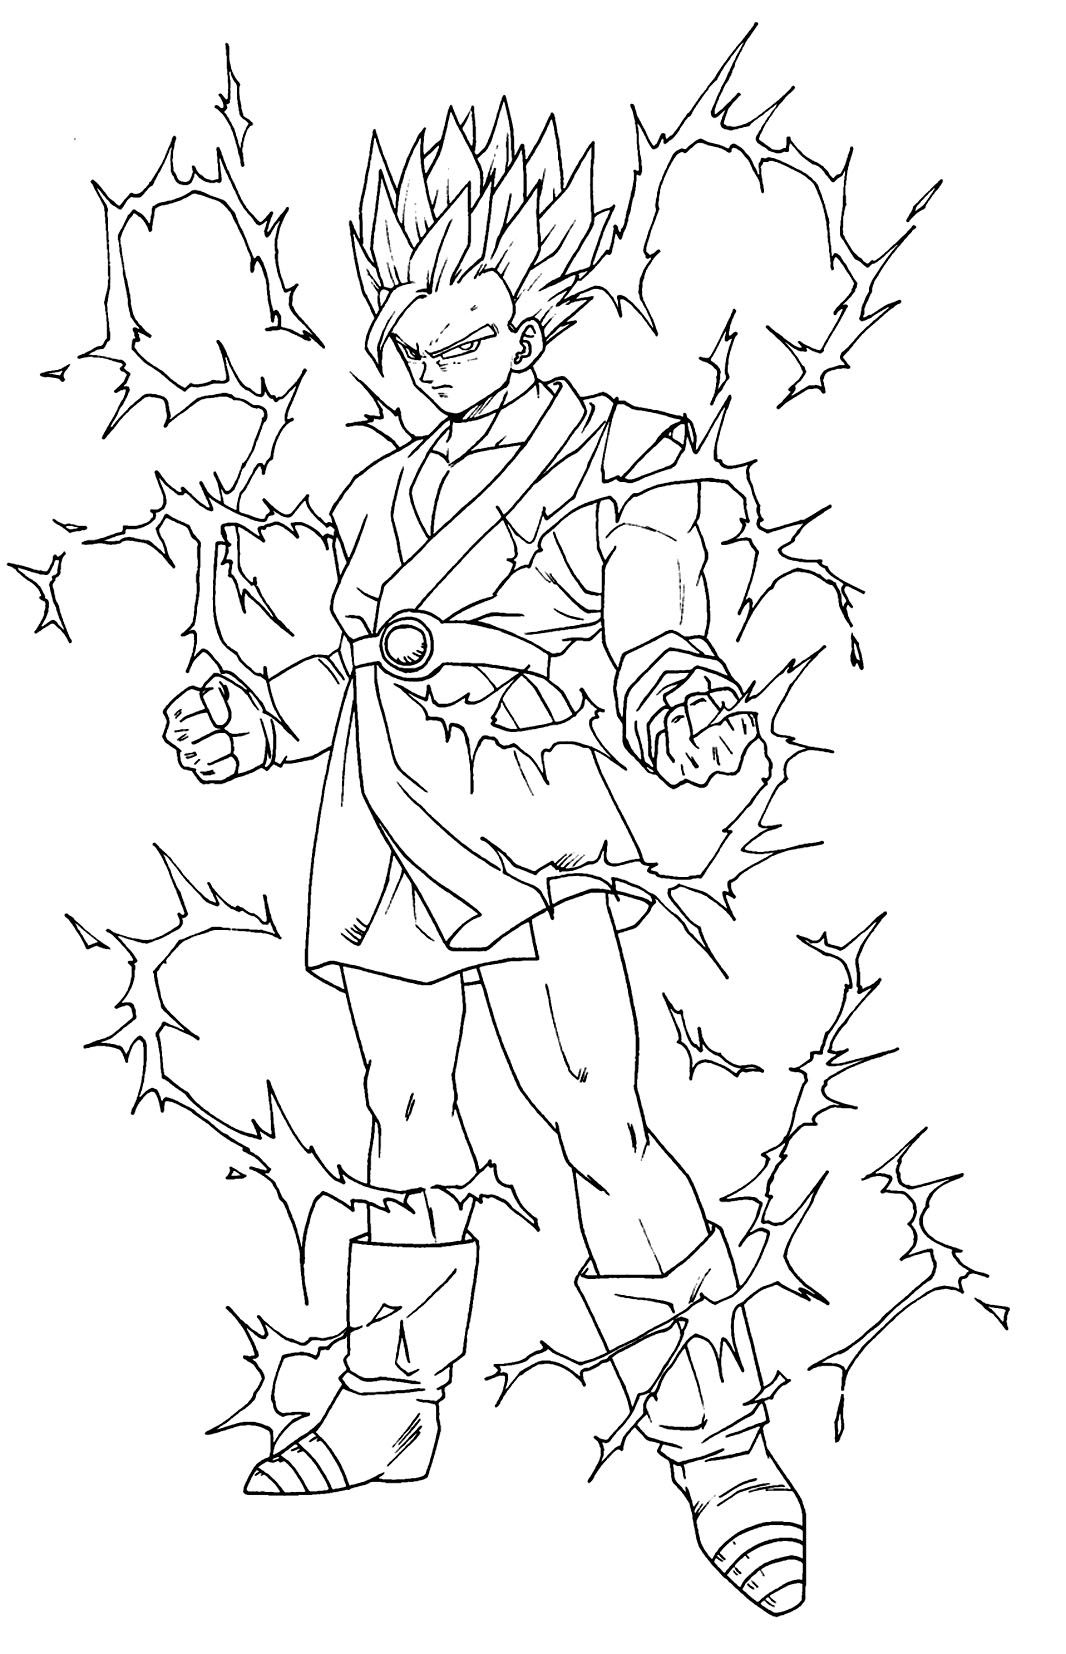 Coloriages Dragon Ball Z 4 - Coloriage Dragon Ball Z dedans Coloriage Dragon Ball Z Sangoku